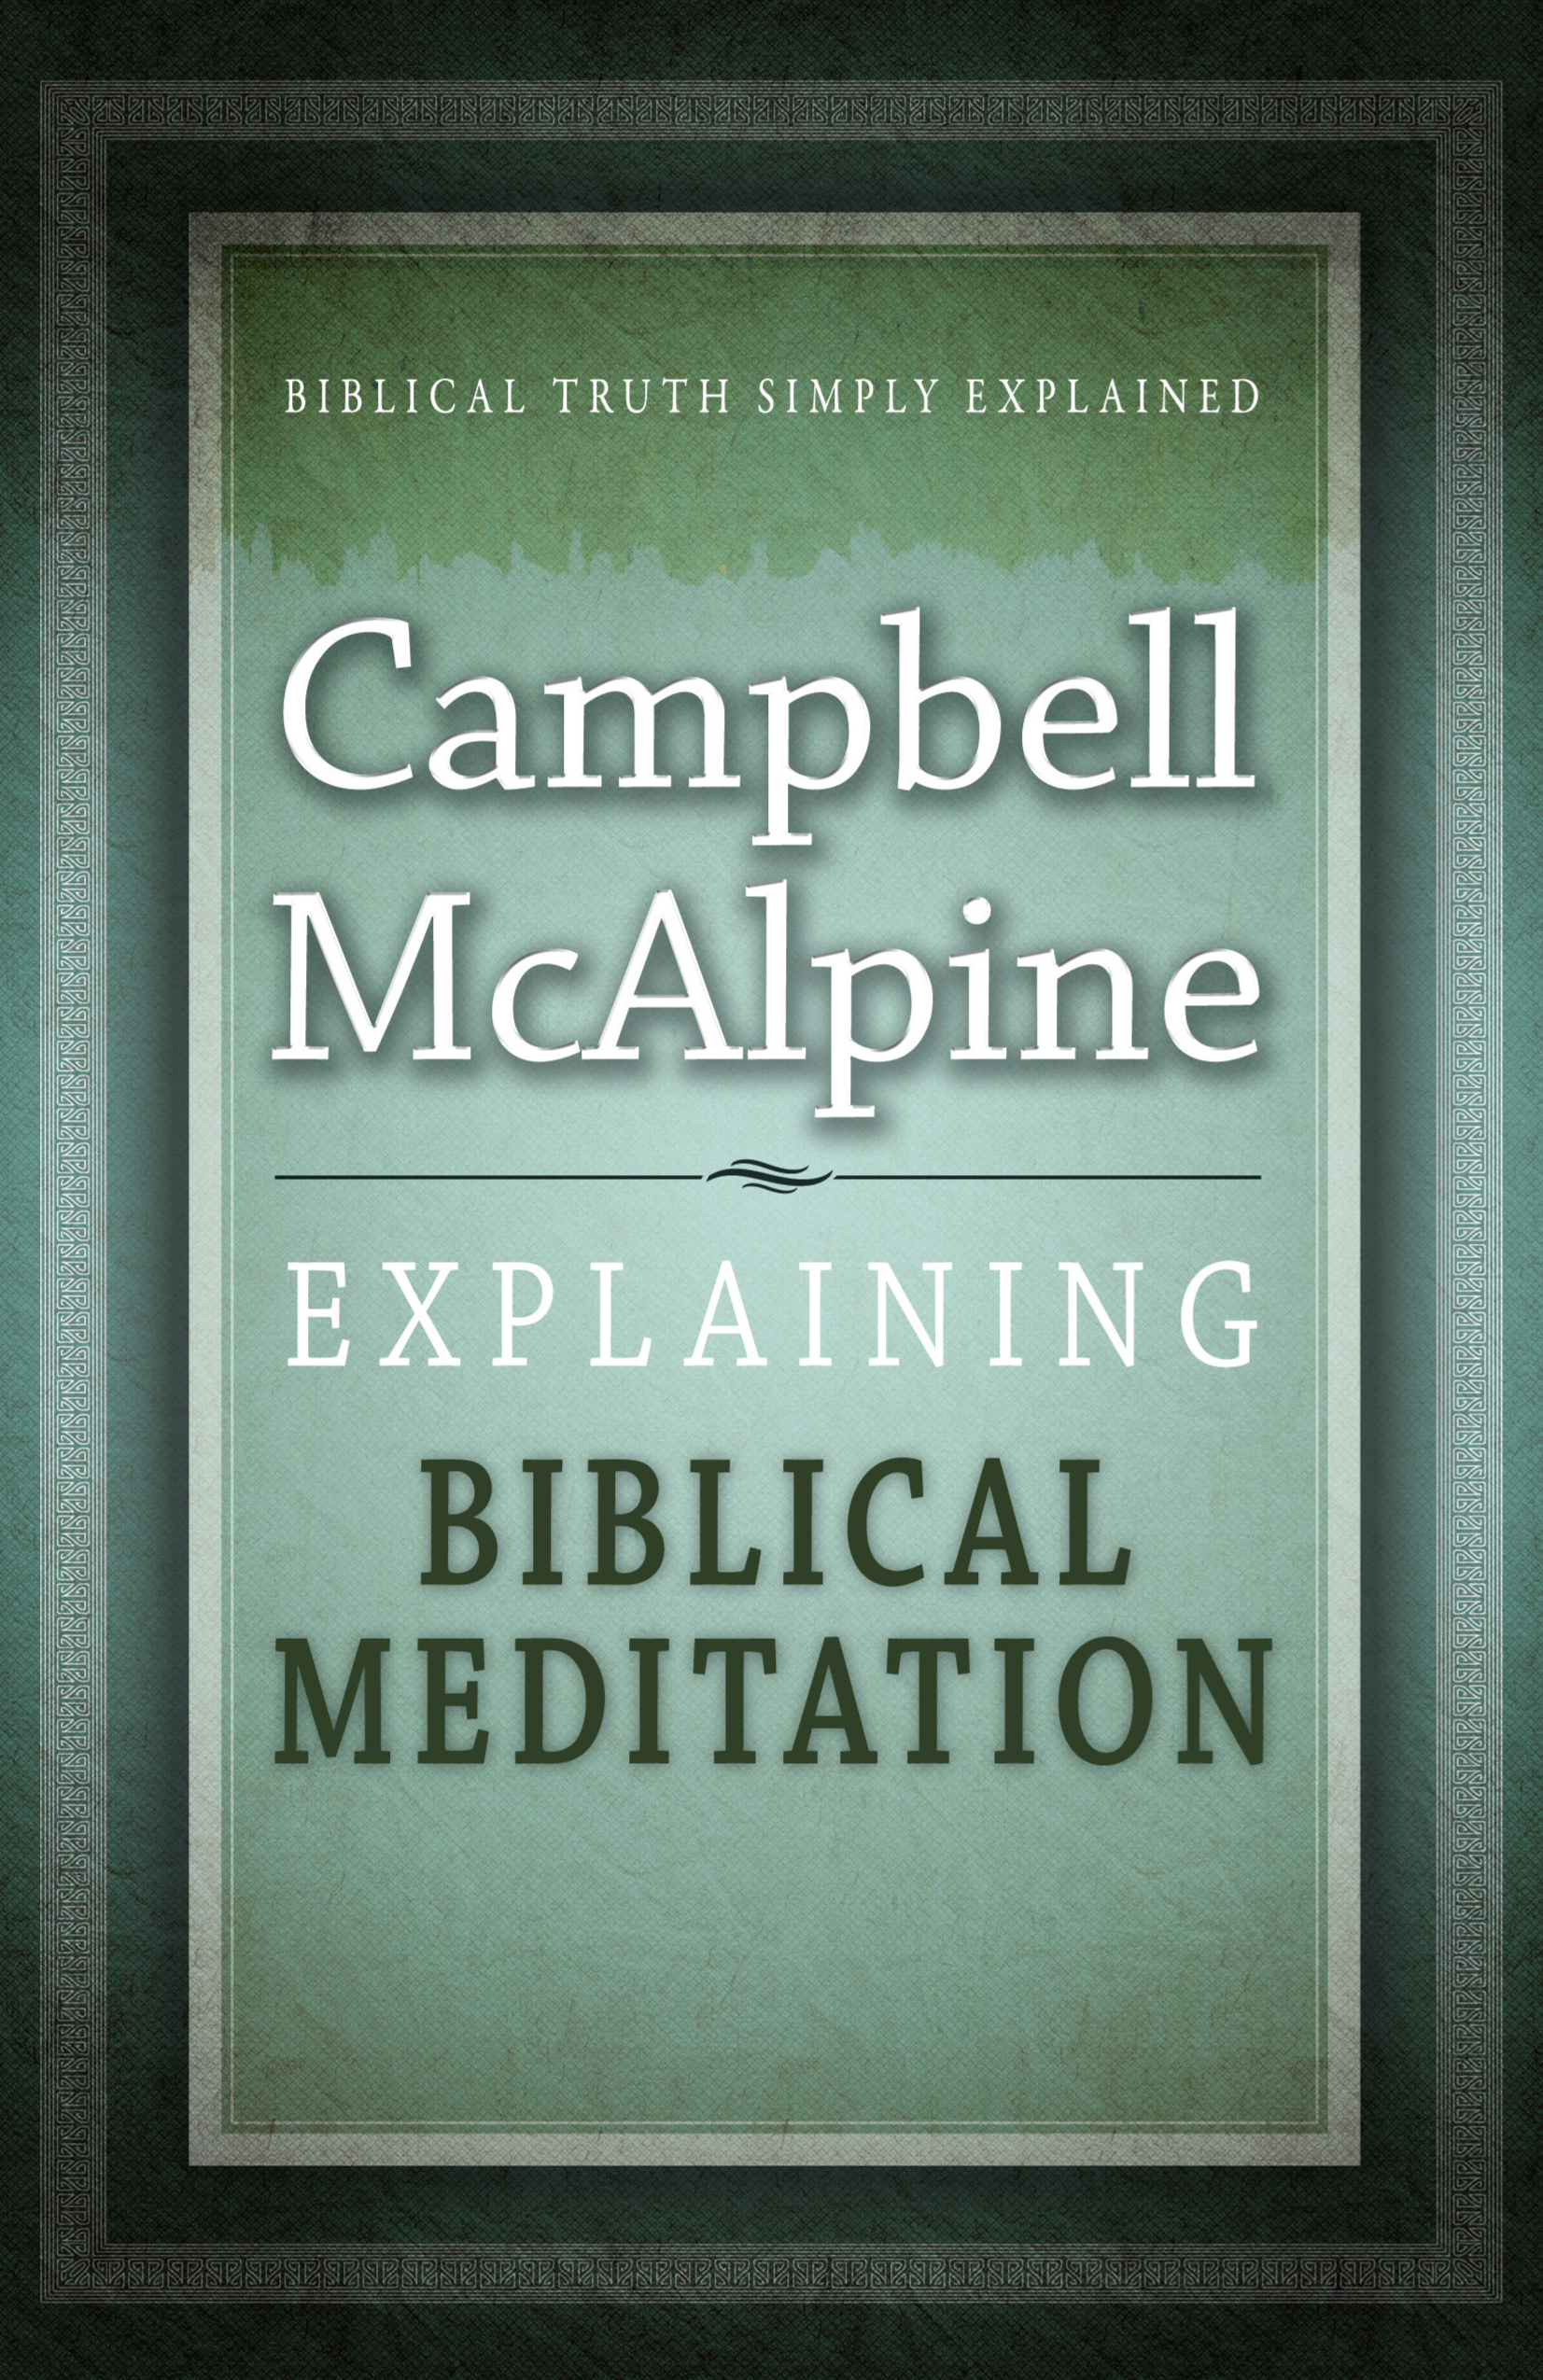 Explaining Biblical Meditation